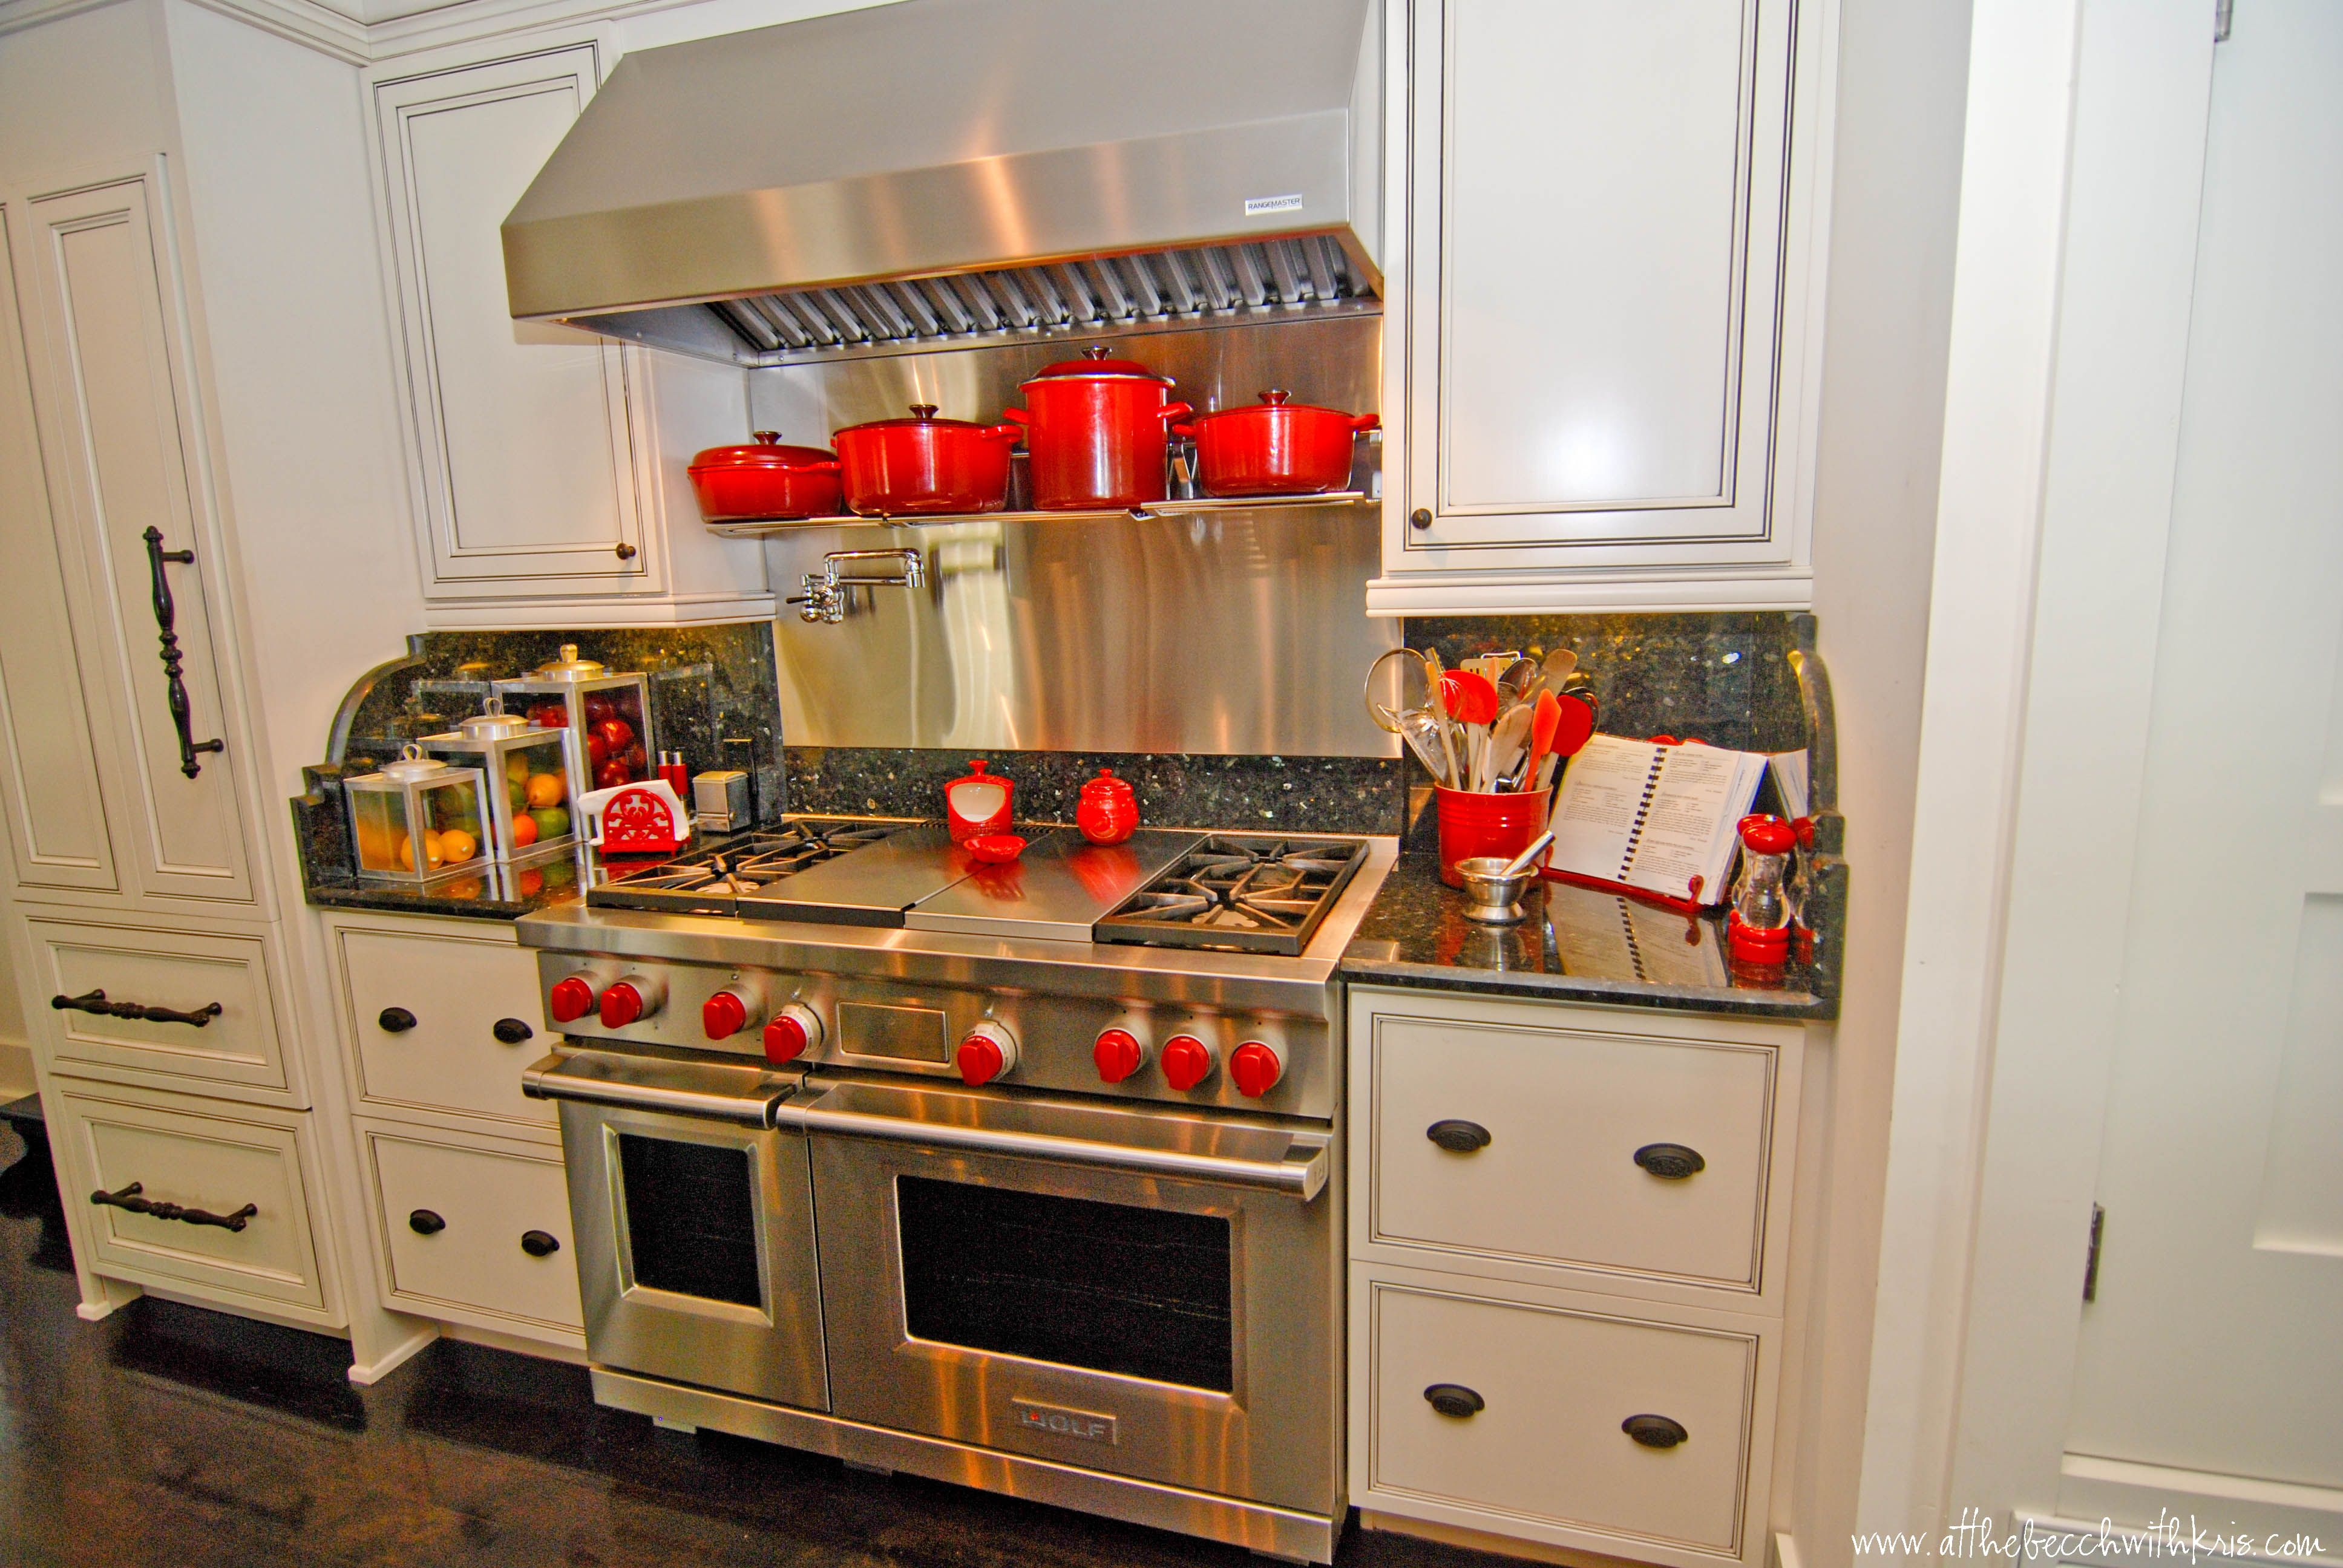 Love The White Cabinets And Black Pin Stripe Stove Is Super Hot Too Kitchen Cabinets White Cabinets Kitchen